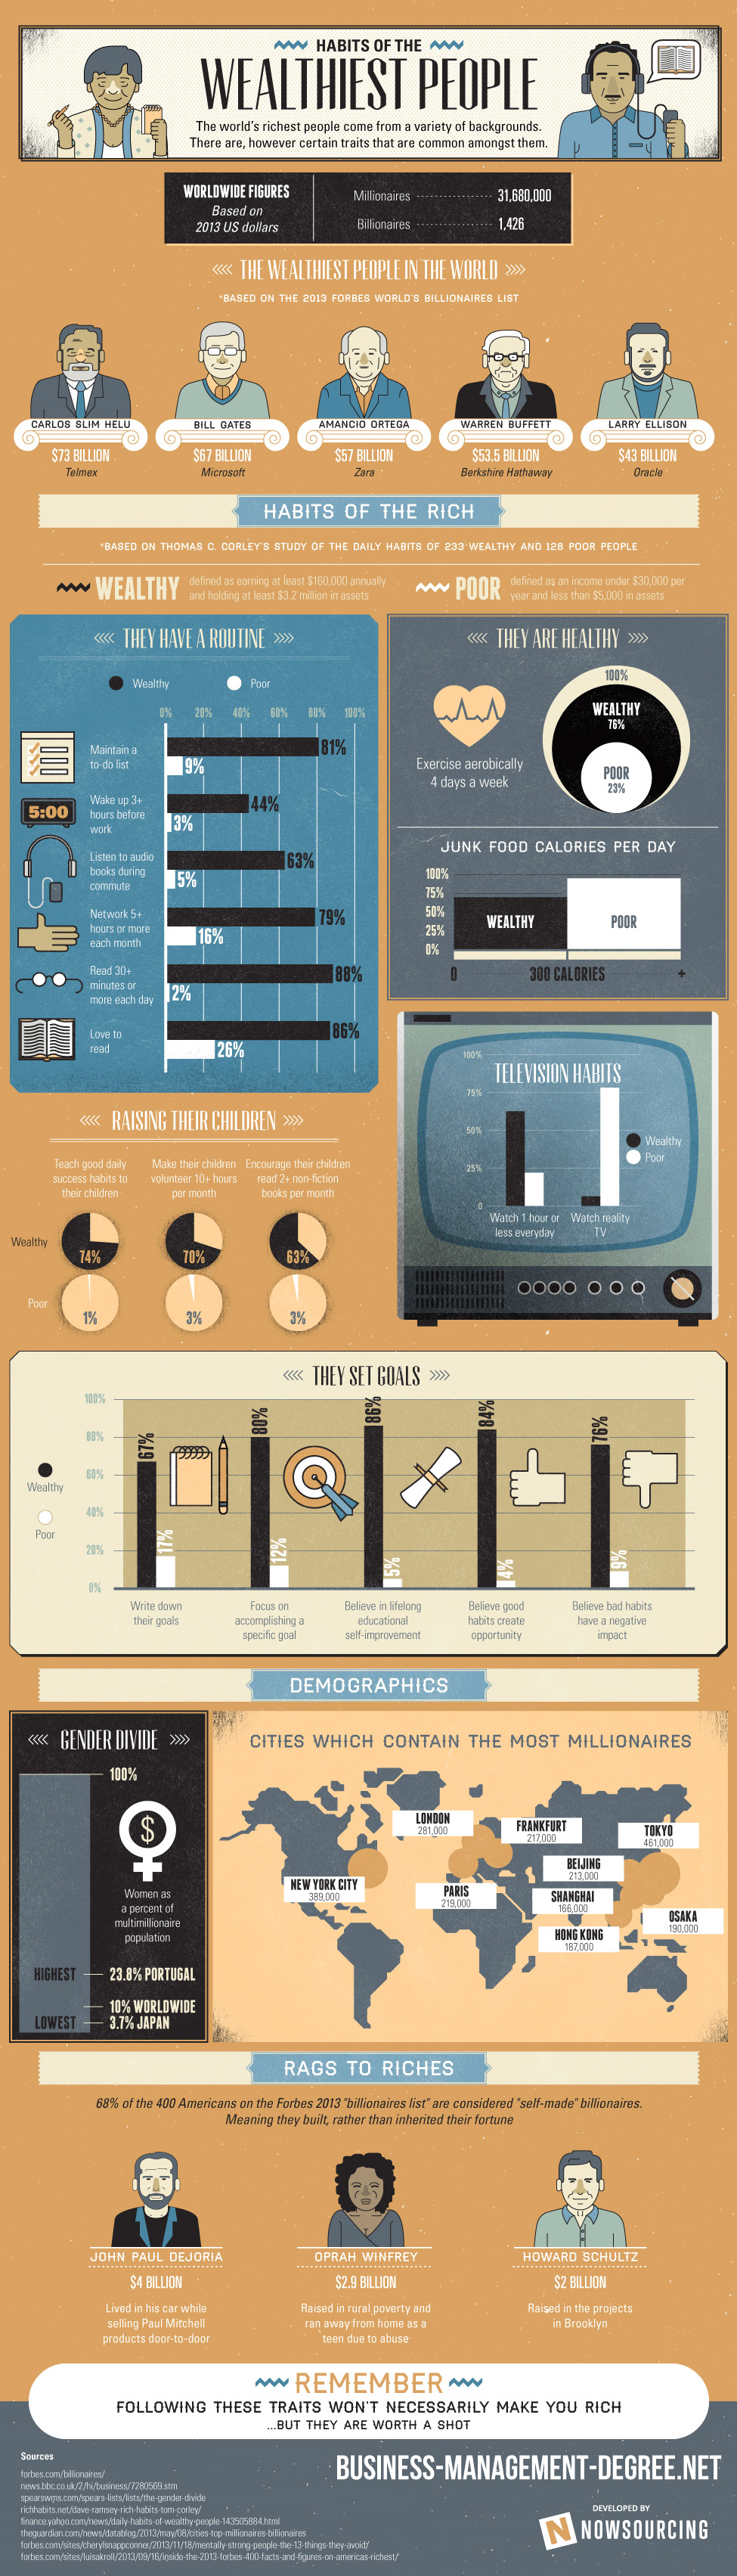 1389897325-habits-worlds-wealthiest-people-infographic